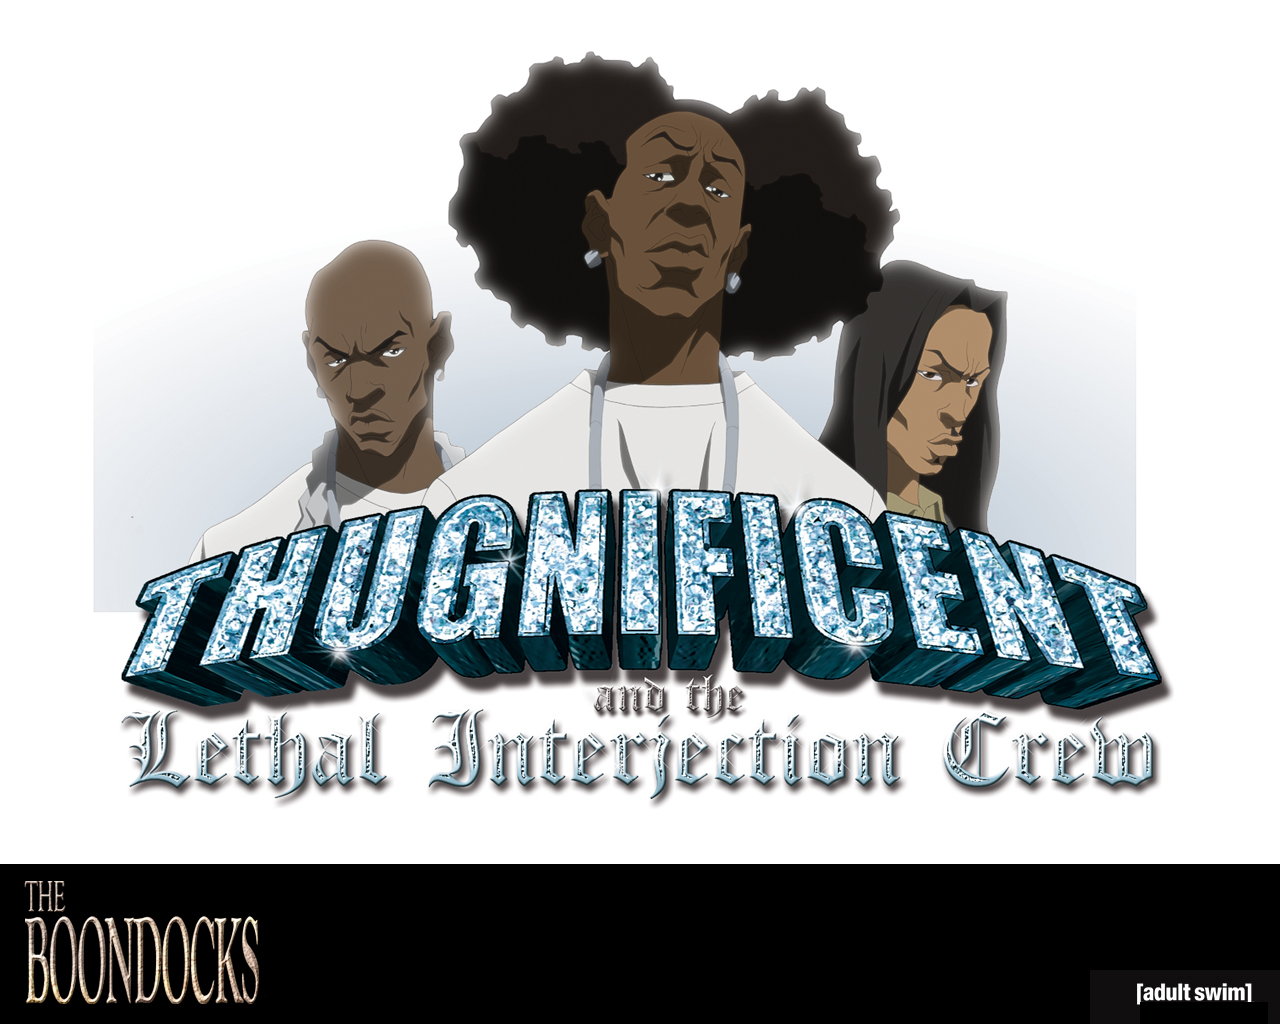 Thugnificent From The Boondocks Download HD Wallpapers And Free Images